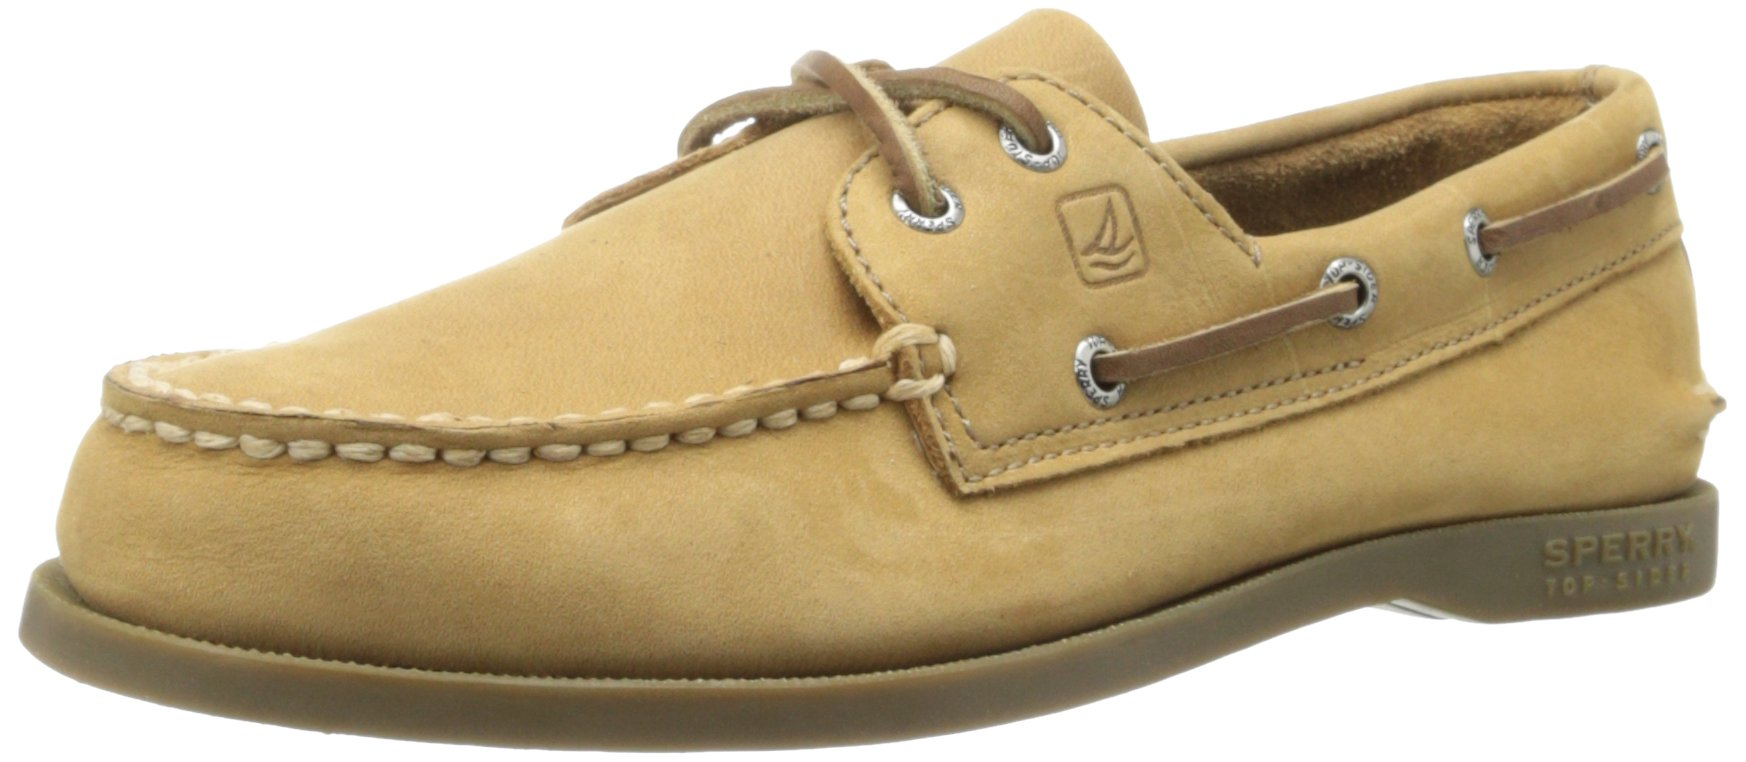 Sperry Authentic Original Boat Shoe (Toddler/Little Kid/Big Kid),Sahara,6 M US Big Kid